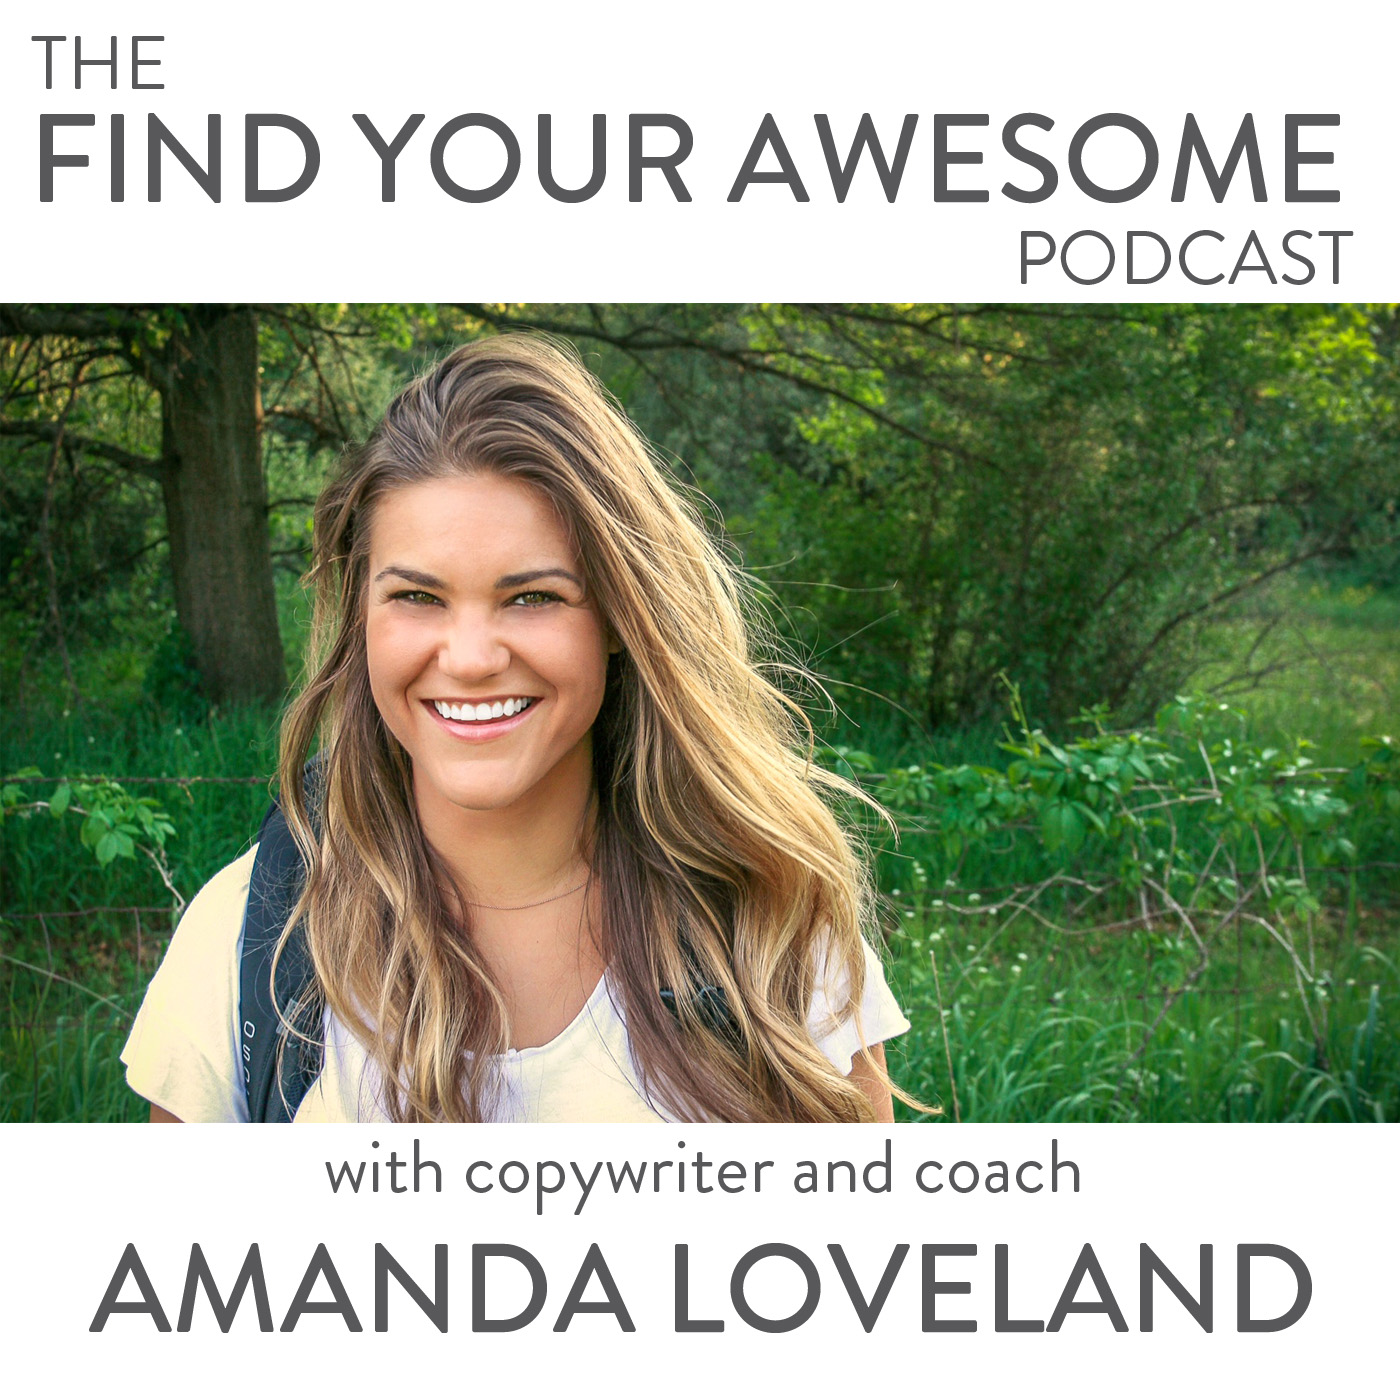 AmandaLoveland_podcast_coverart.jpg